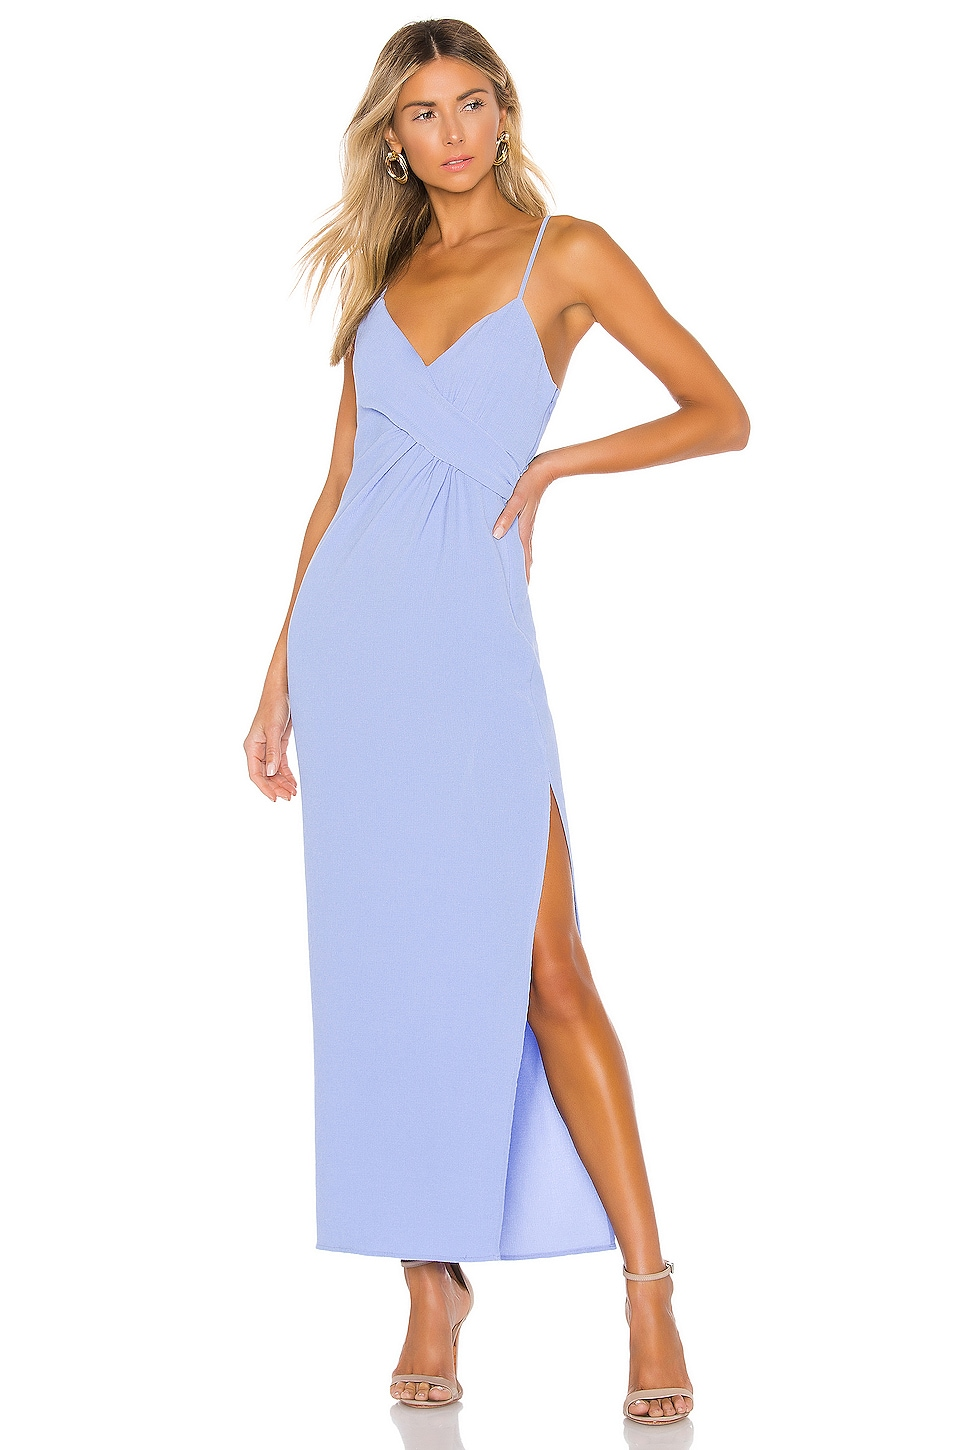 NBD Saanvi Gown in Periwinkle Blue